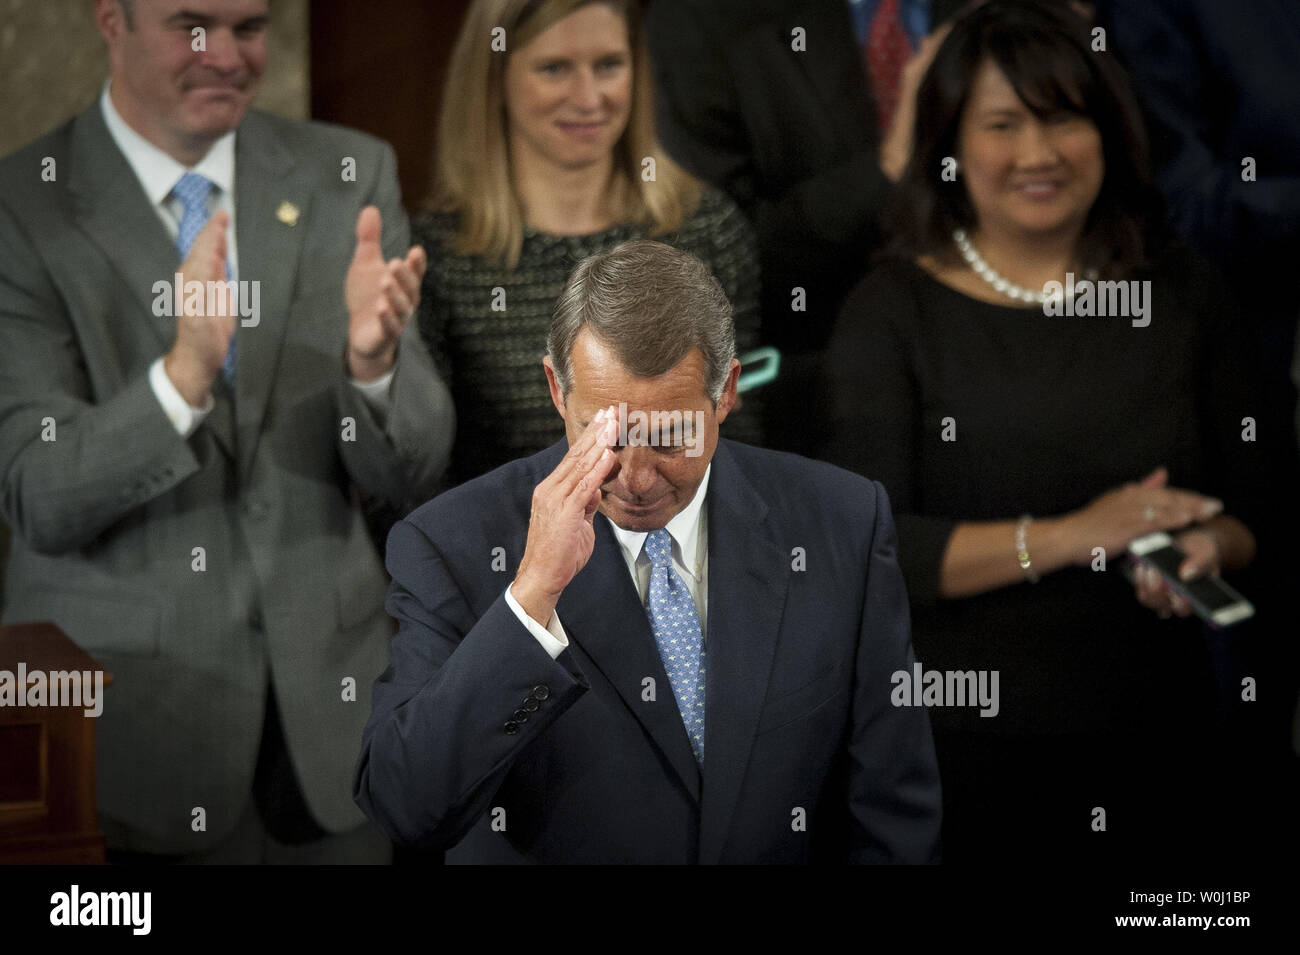 The day before he is to retire from Congress, Speaker of the House John Boehner (R-OH) salutes the Chamber after delivering his farewell address to the House of Representatives on October 29, 2015 in Washington, D.C. Following his address, the House of Representatives will vote on Boehner's replacement for Speaker. Photo by Pete Marovich/UPI - Stock Image